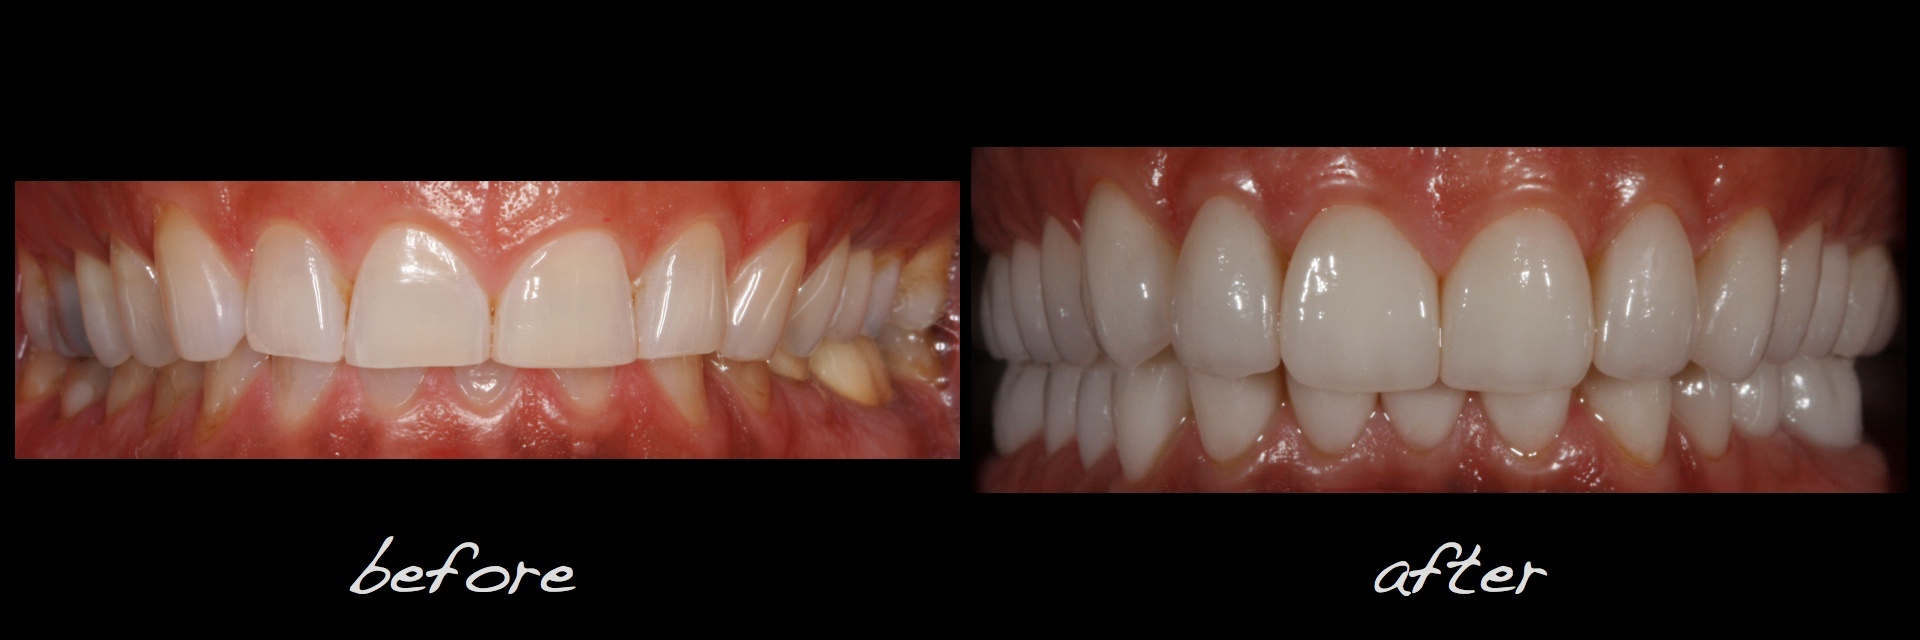 Full Mouth Dental Implants Reconstruction Conservative Alex Sasia.024